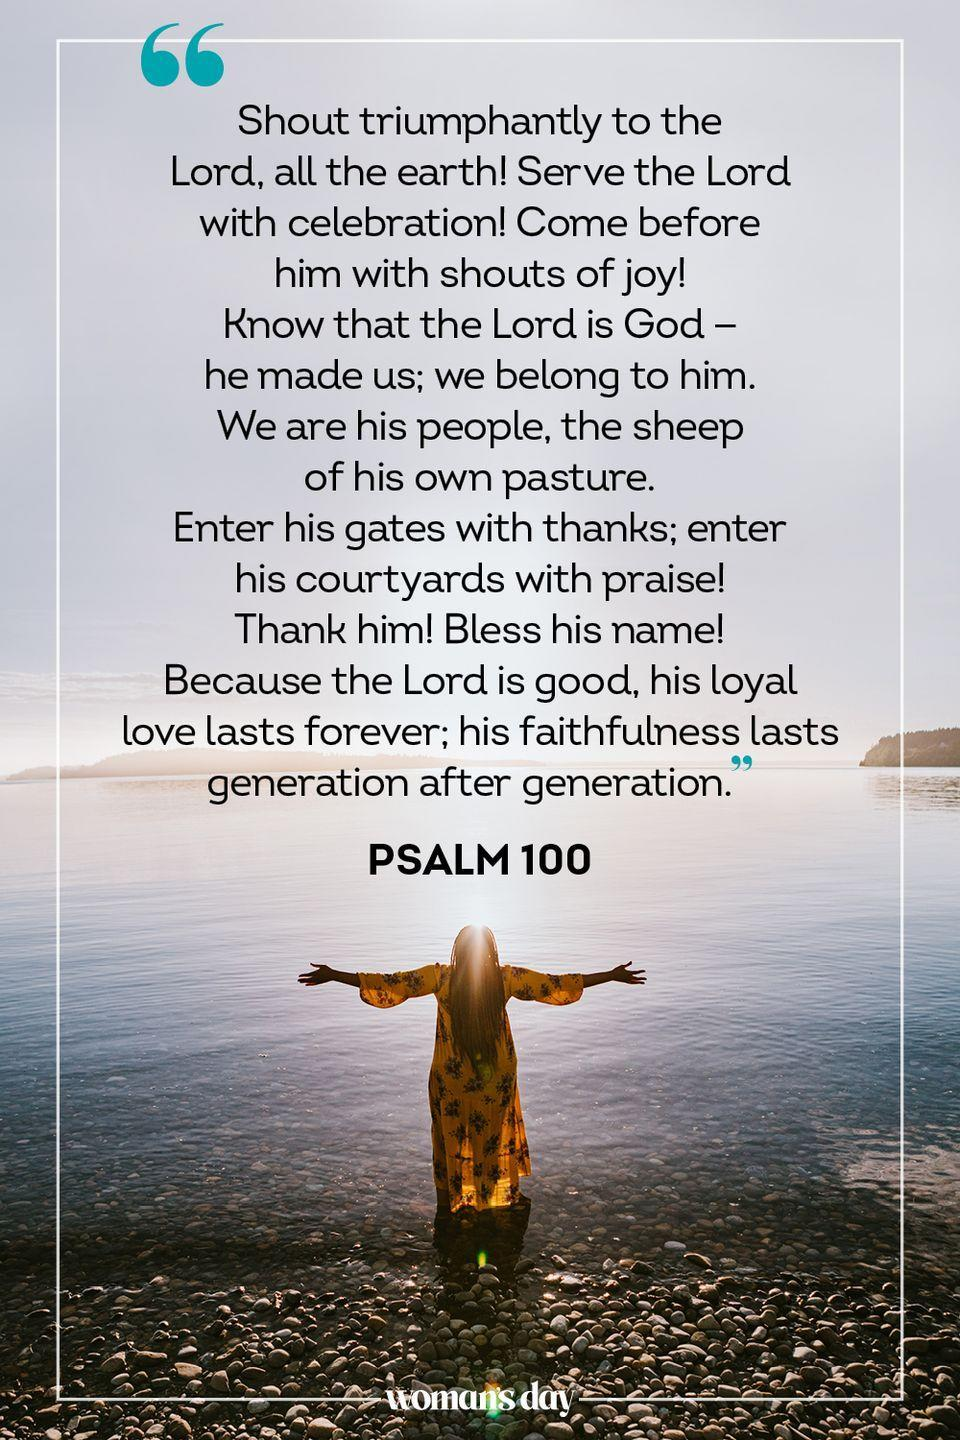 "<p>""Shout triumphantly to the Lord, all the earth! Serve the Lord with celebration! Come before him with shouts of joy! <br>Know that the Lord is God — he made us; we belong to him. We are his people, the sheep of his own pasture. <br>Enter his gates with thanks; enter his courtyards with praise! Thank him! Bless his name! <br>Because the Lord is good, his loyal love lasts forever; his faithfulness lasts generation after generation."" — Psalm 100</p>"